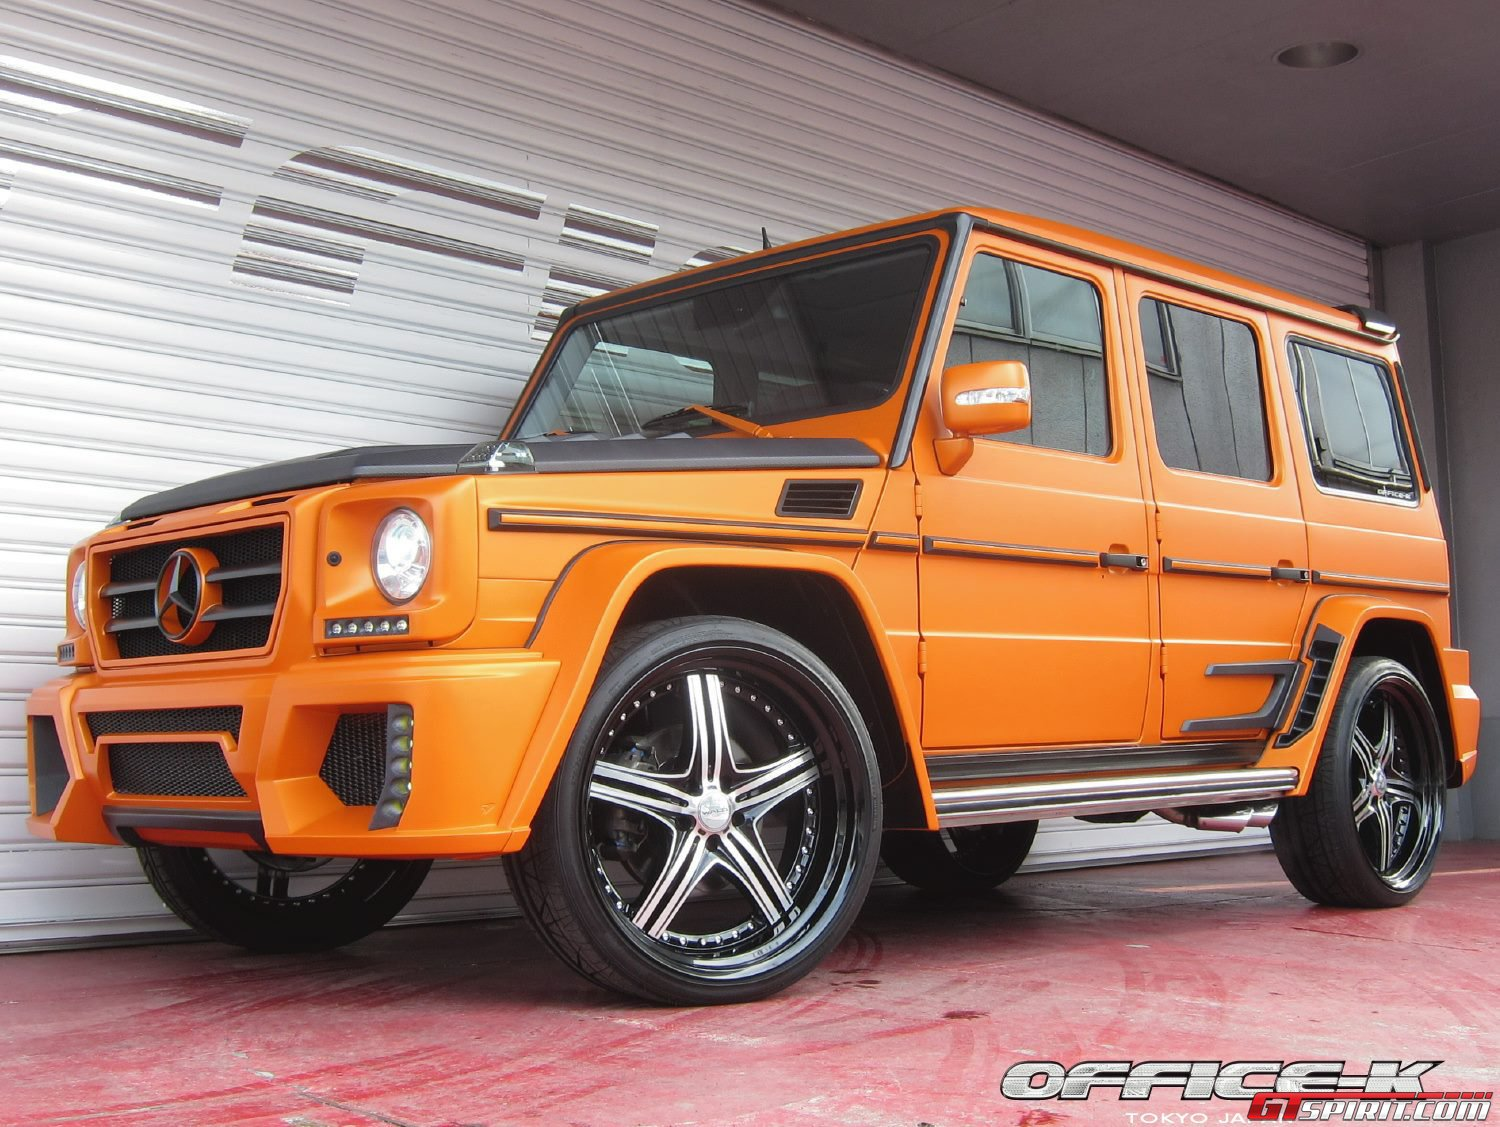 Mercedes Benz G55 Amg Black Bison By Office K Daily